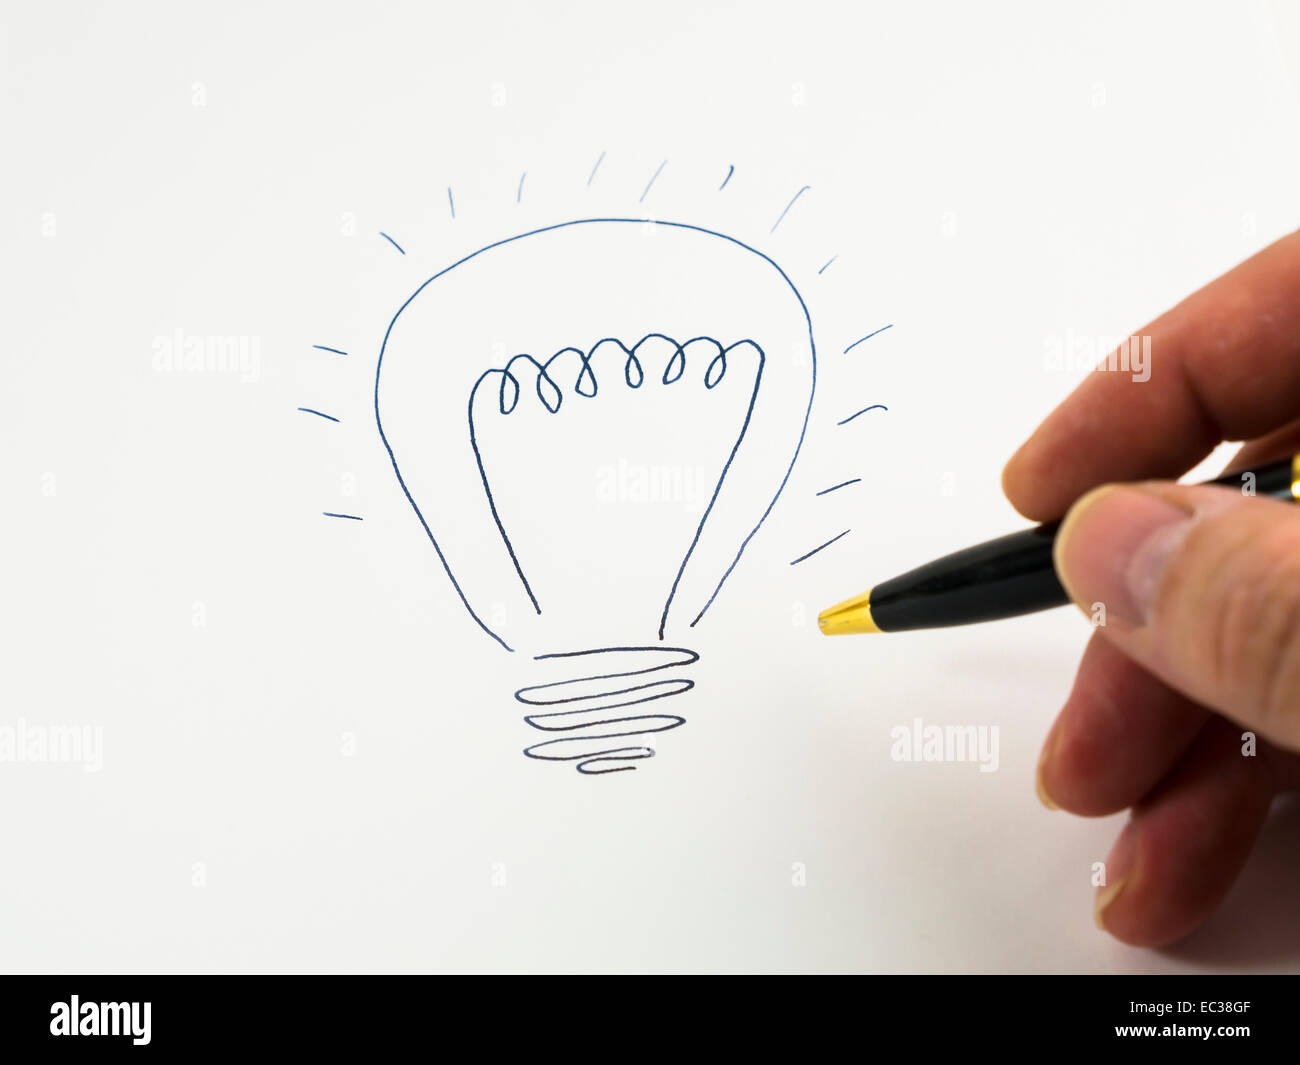 Hand drawing a light bulb, idea, inspiration, flash of inspiration, search for solutions, symbolic image - Stock Image